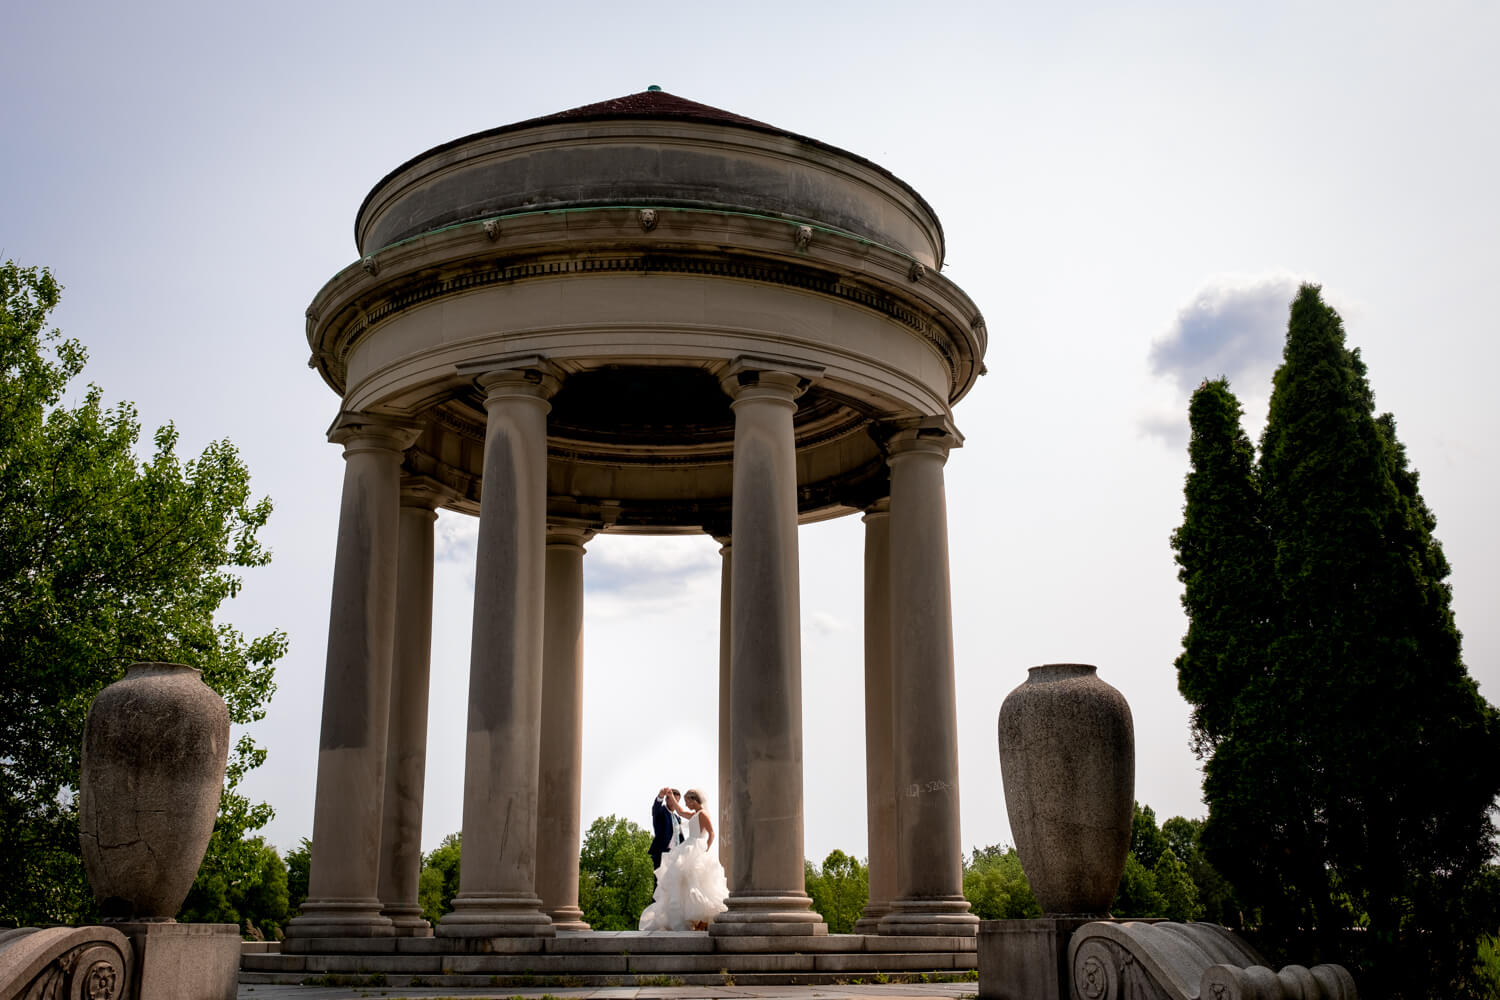 Philadelphia wedding photographer ALN IMAGES captures first look.